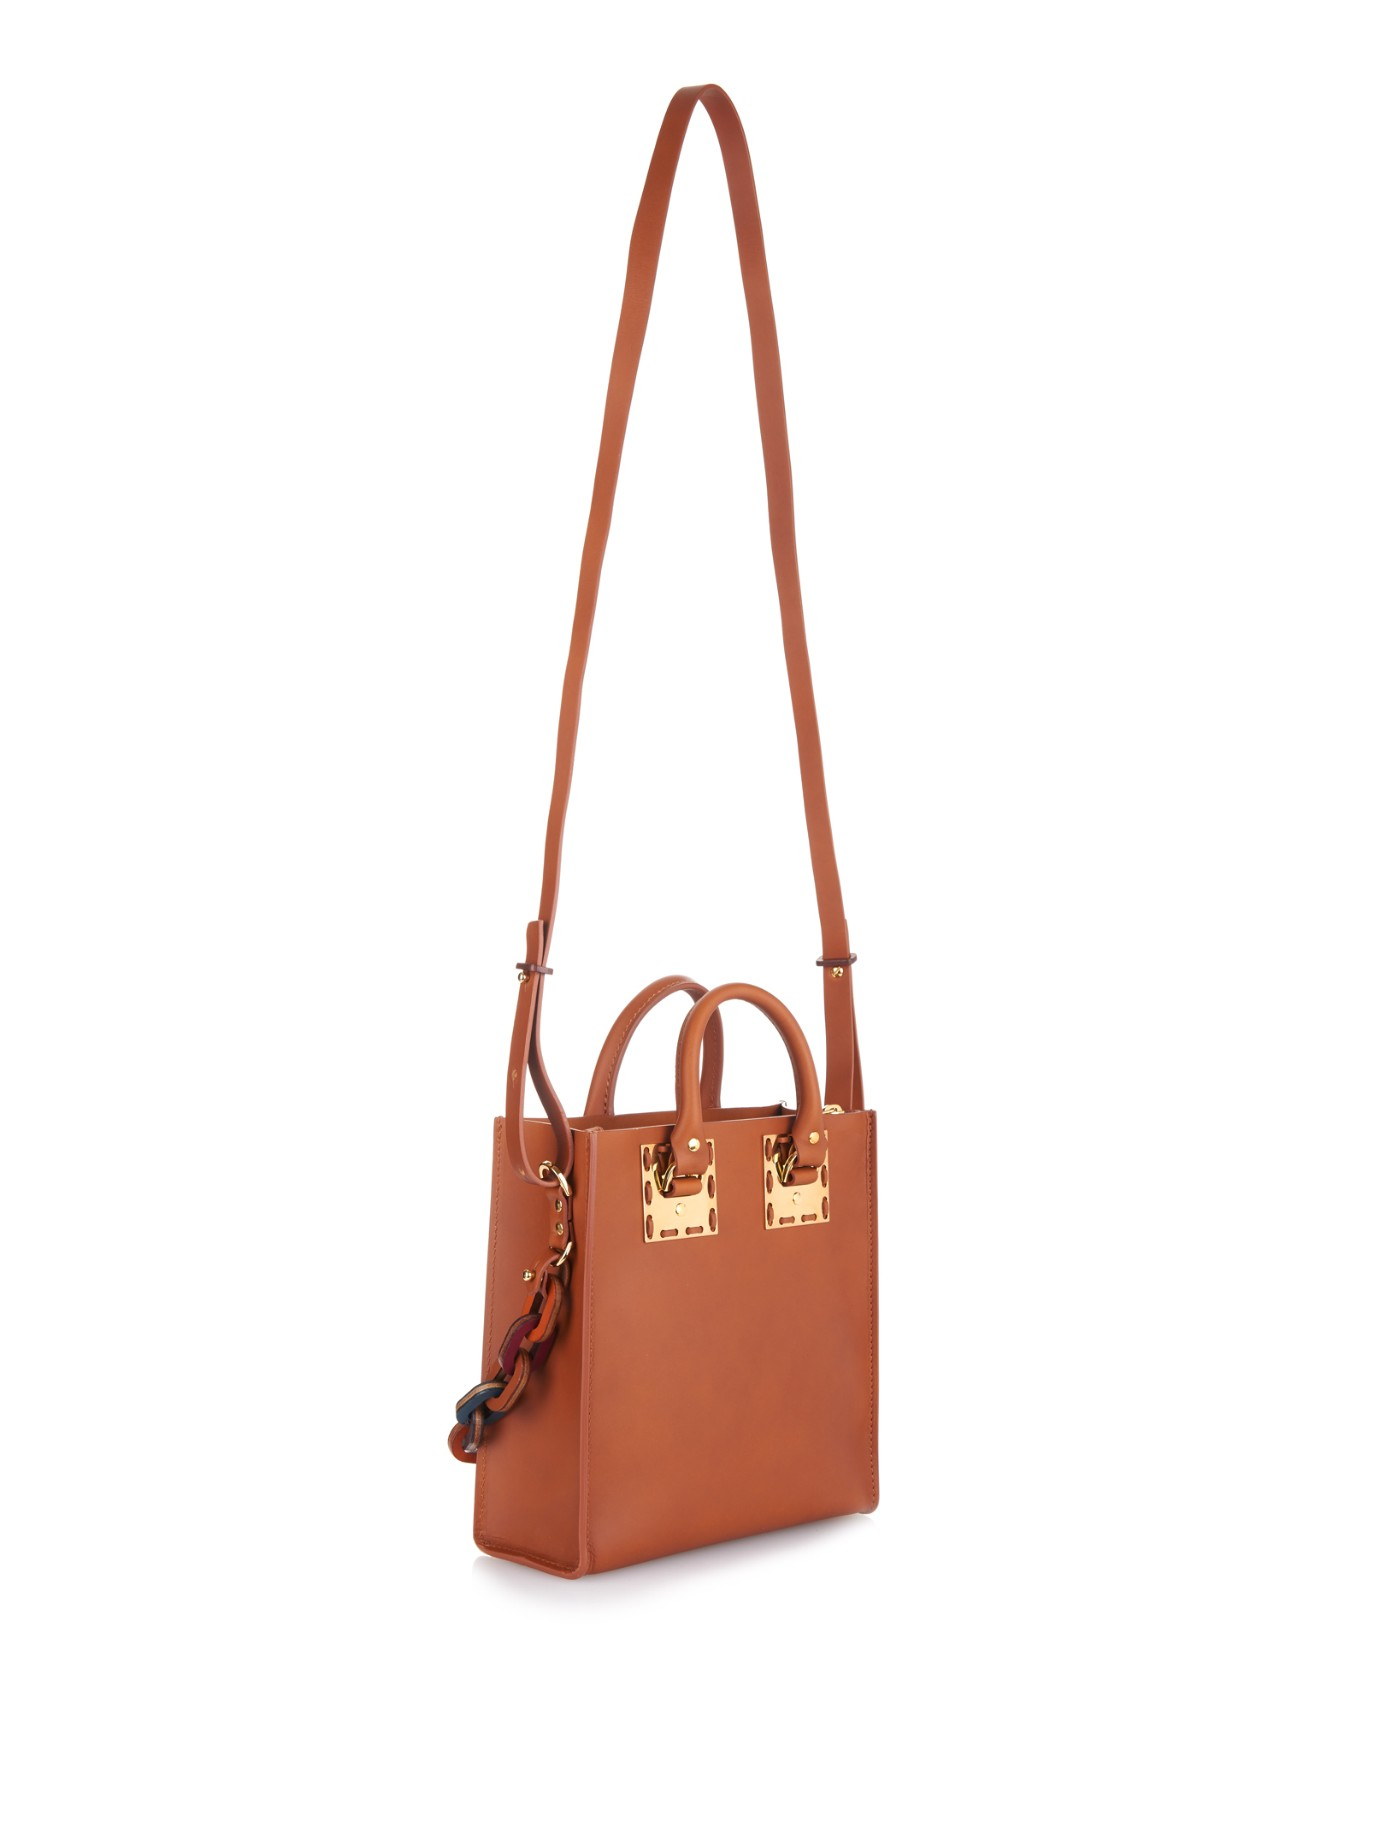 Mini Albion Bag in Tan Cowhide Leather Sophie Hulme Websites For Sale Outlet q7PJWFw